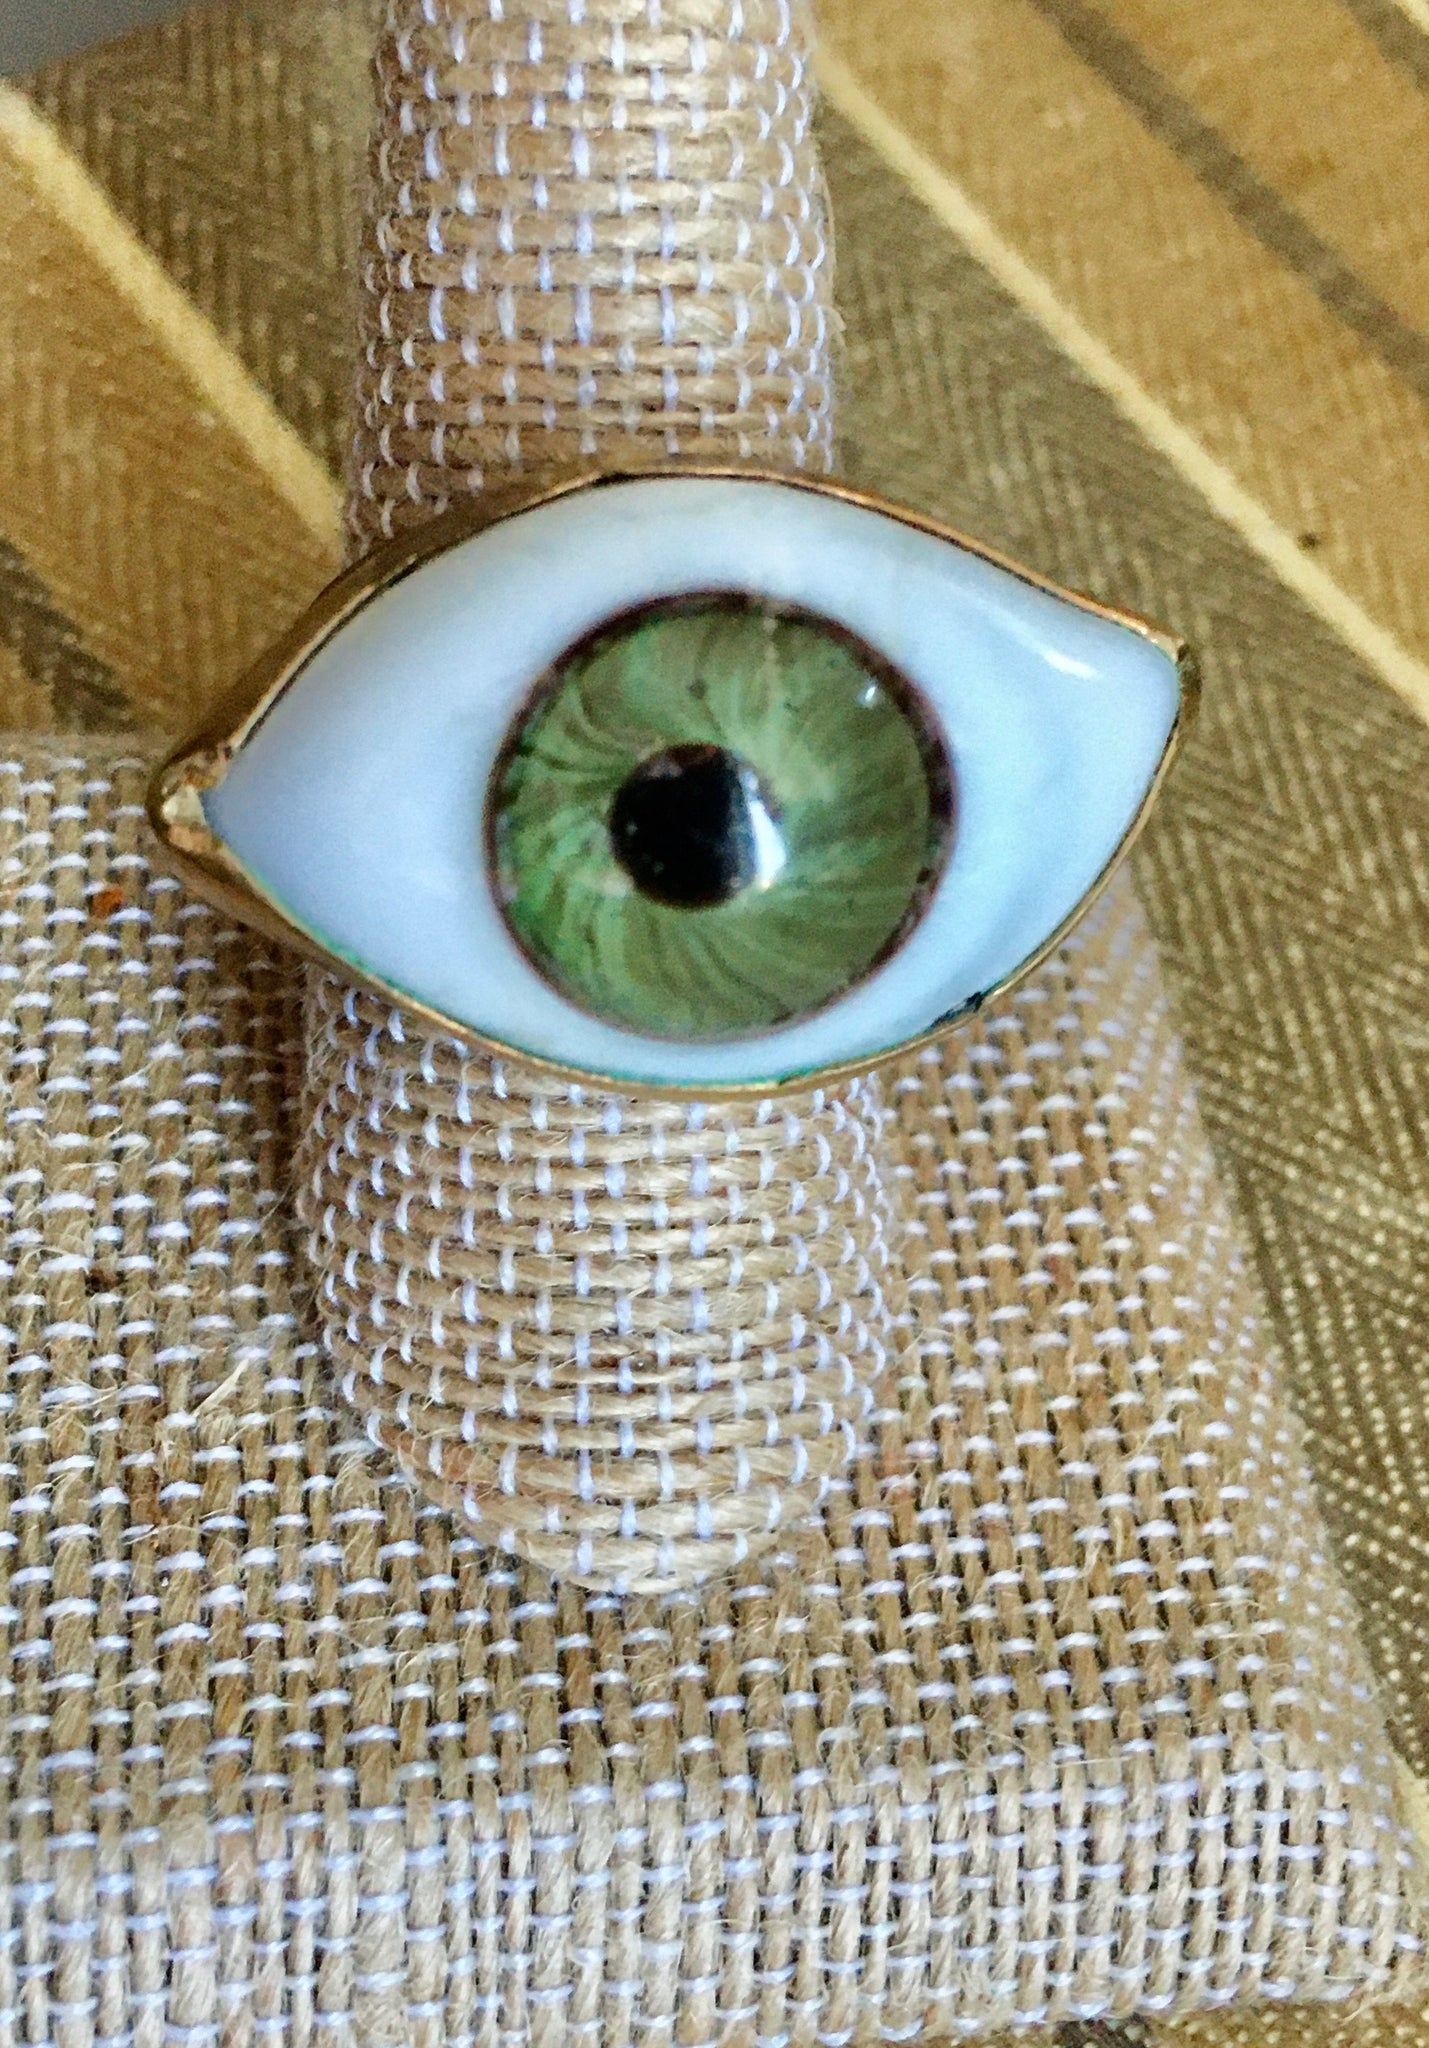 Green eye ring size 8.5